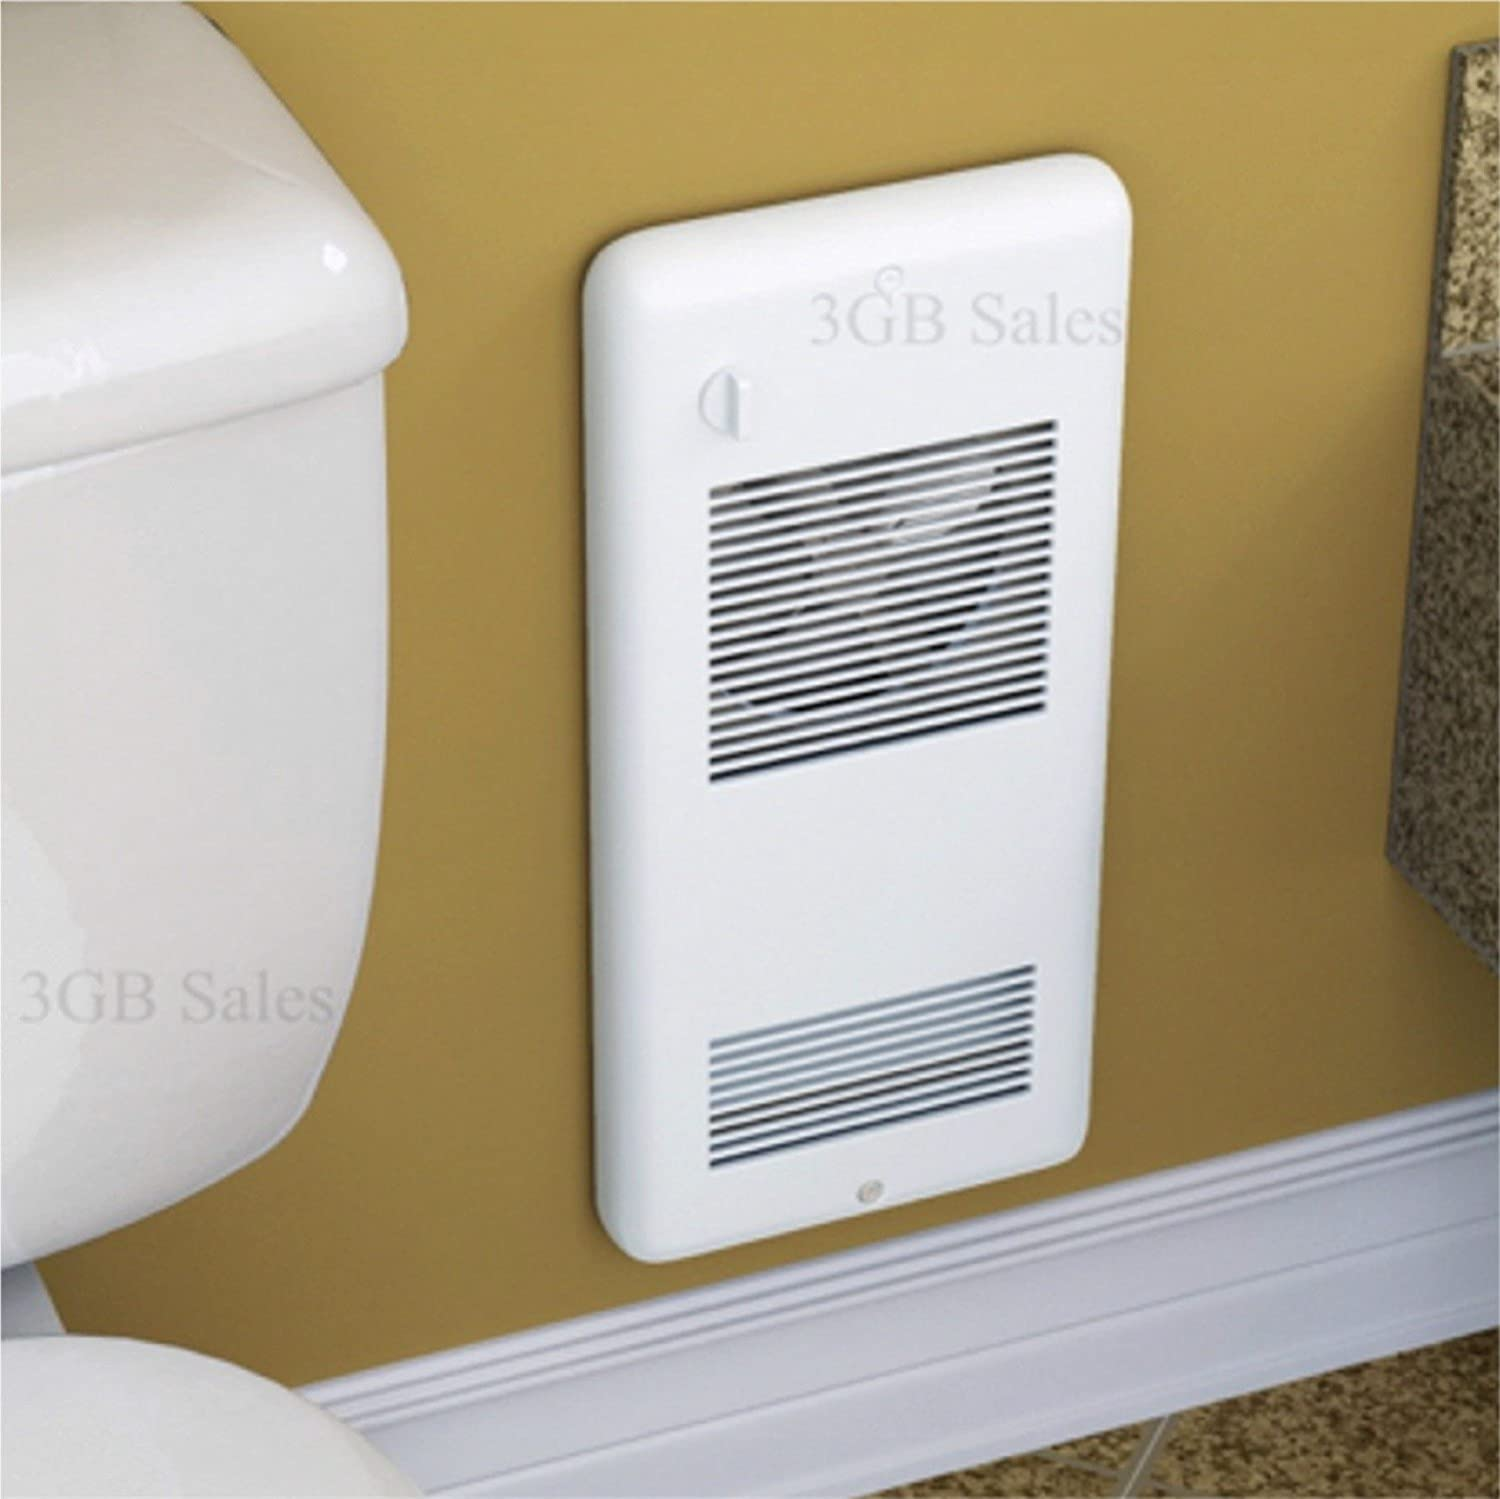 High Quality Bathroom Wall Heater U0026 Free Thermometer Bundle: Heats Up To  150 Sq Ft Ultra Quiet Electric Wall Mounted Heater.